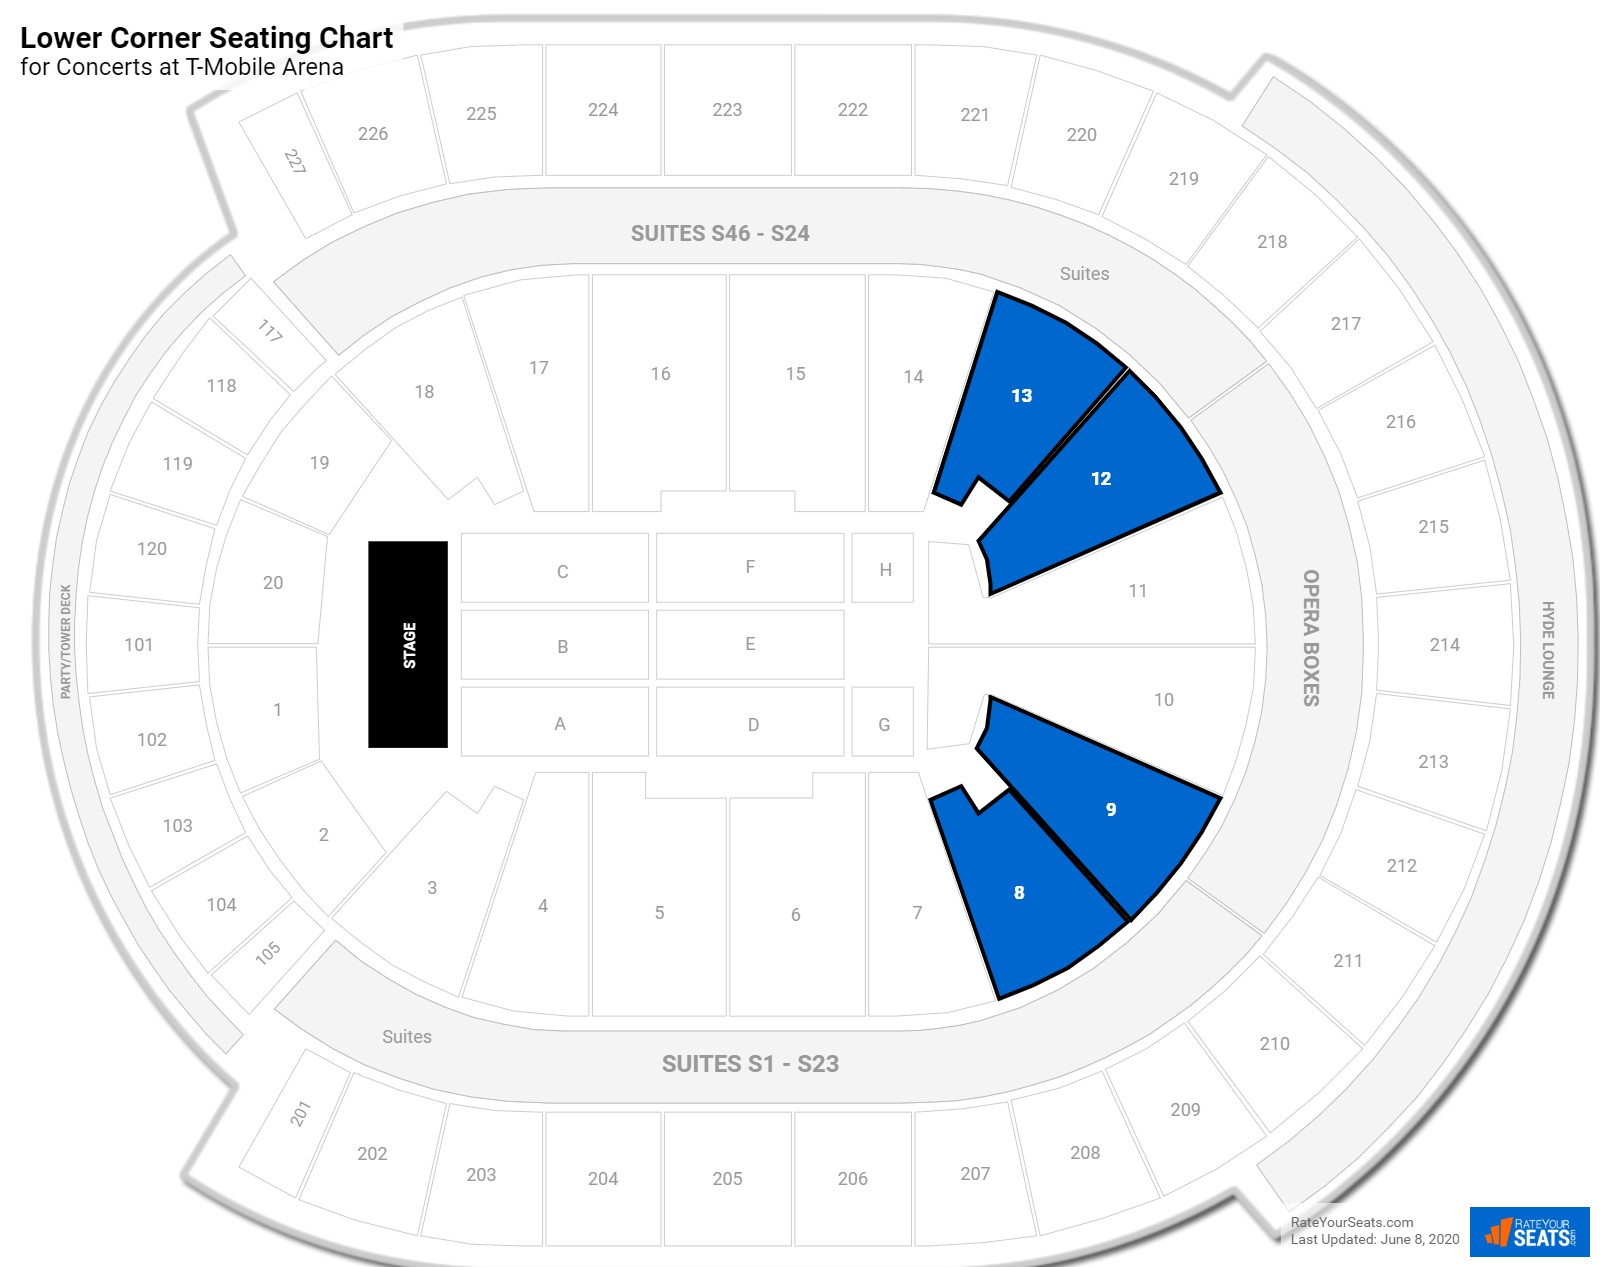 T-Mobile Arena Lower Corner seating chart